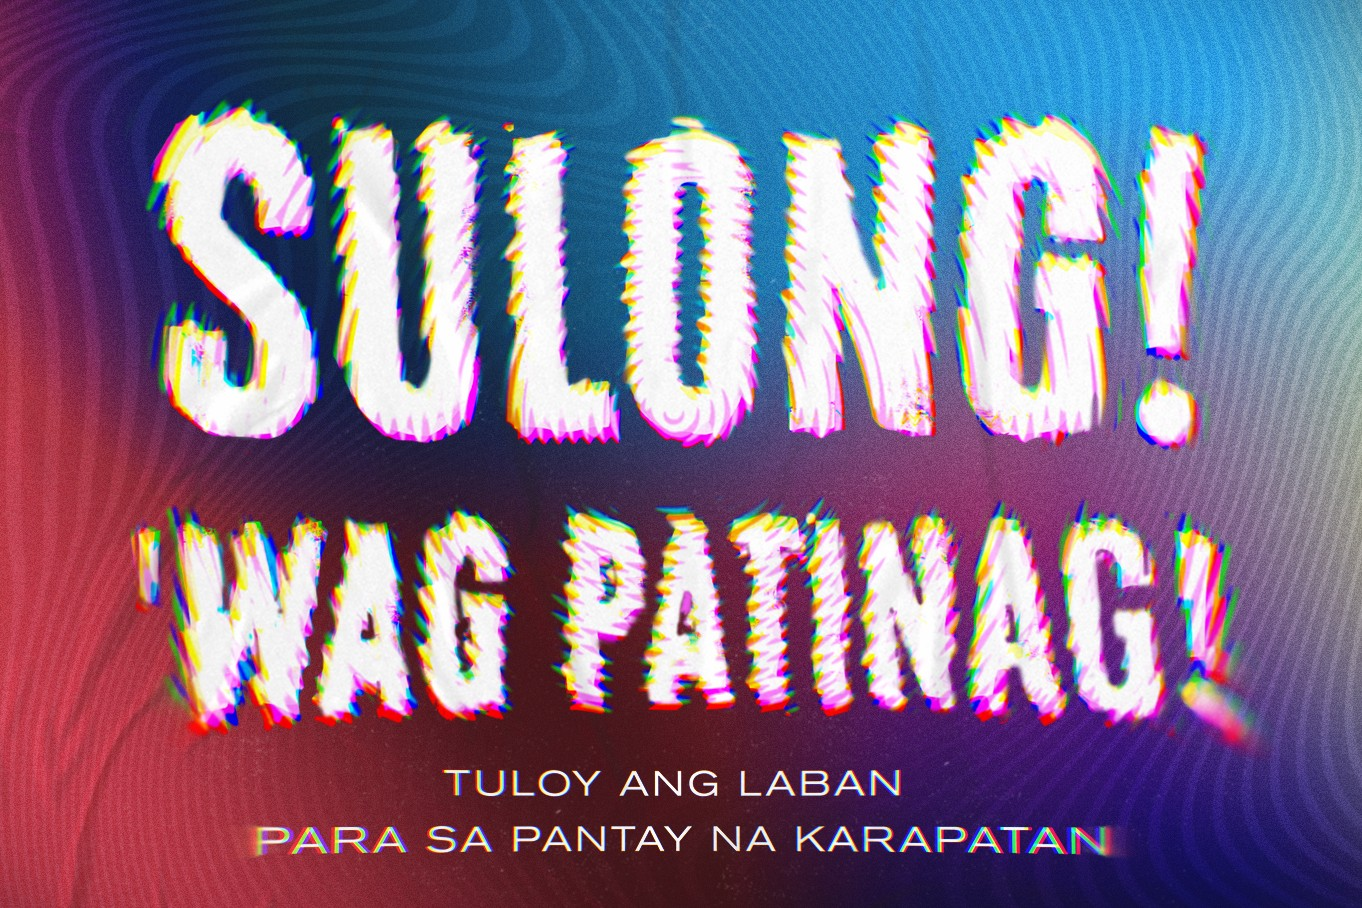 Image: A wide banner with vivid waves of red, blue, purple, yellow. Large text in the center reads